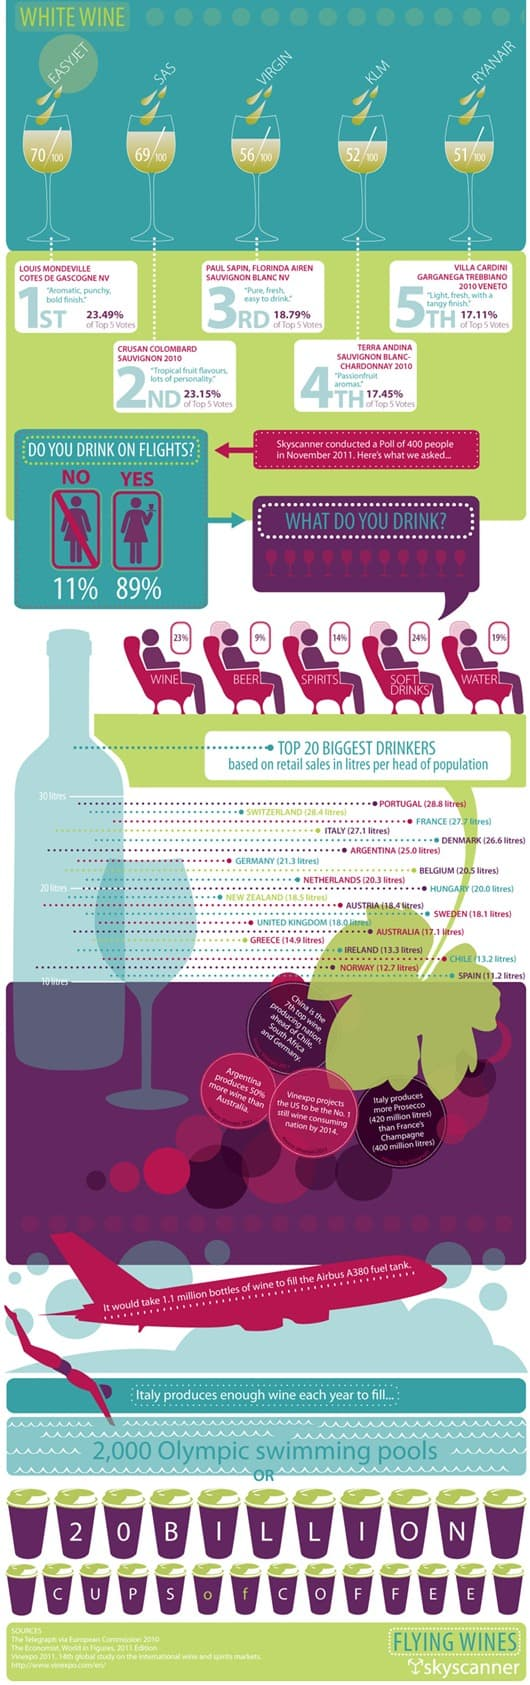 Flying with Wines-An Infographic (2)